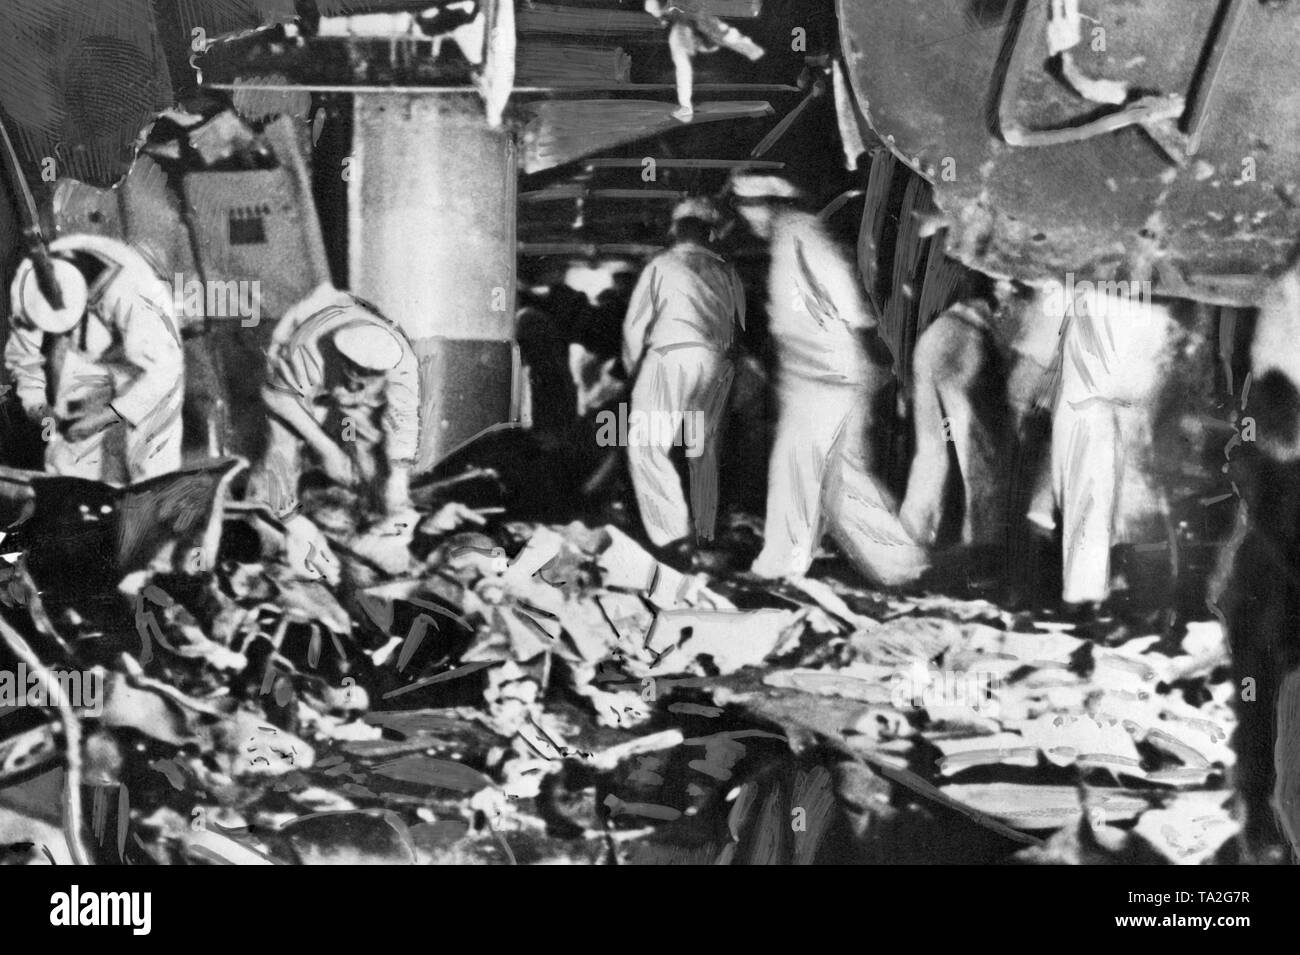 Photoof sailors during acleaning-upoperation on the deck of 'Deutschland' after the bomb attack in the port of the Balearic Island of Ibiza on the 29th of May, 1937. In the foregroundlies debris. On top there are shattered armor plates. - Stock Image